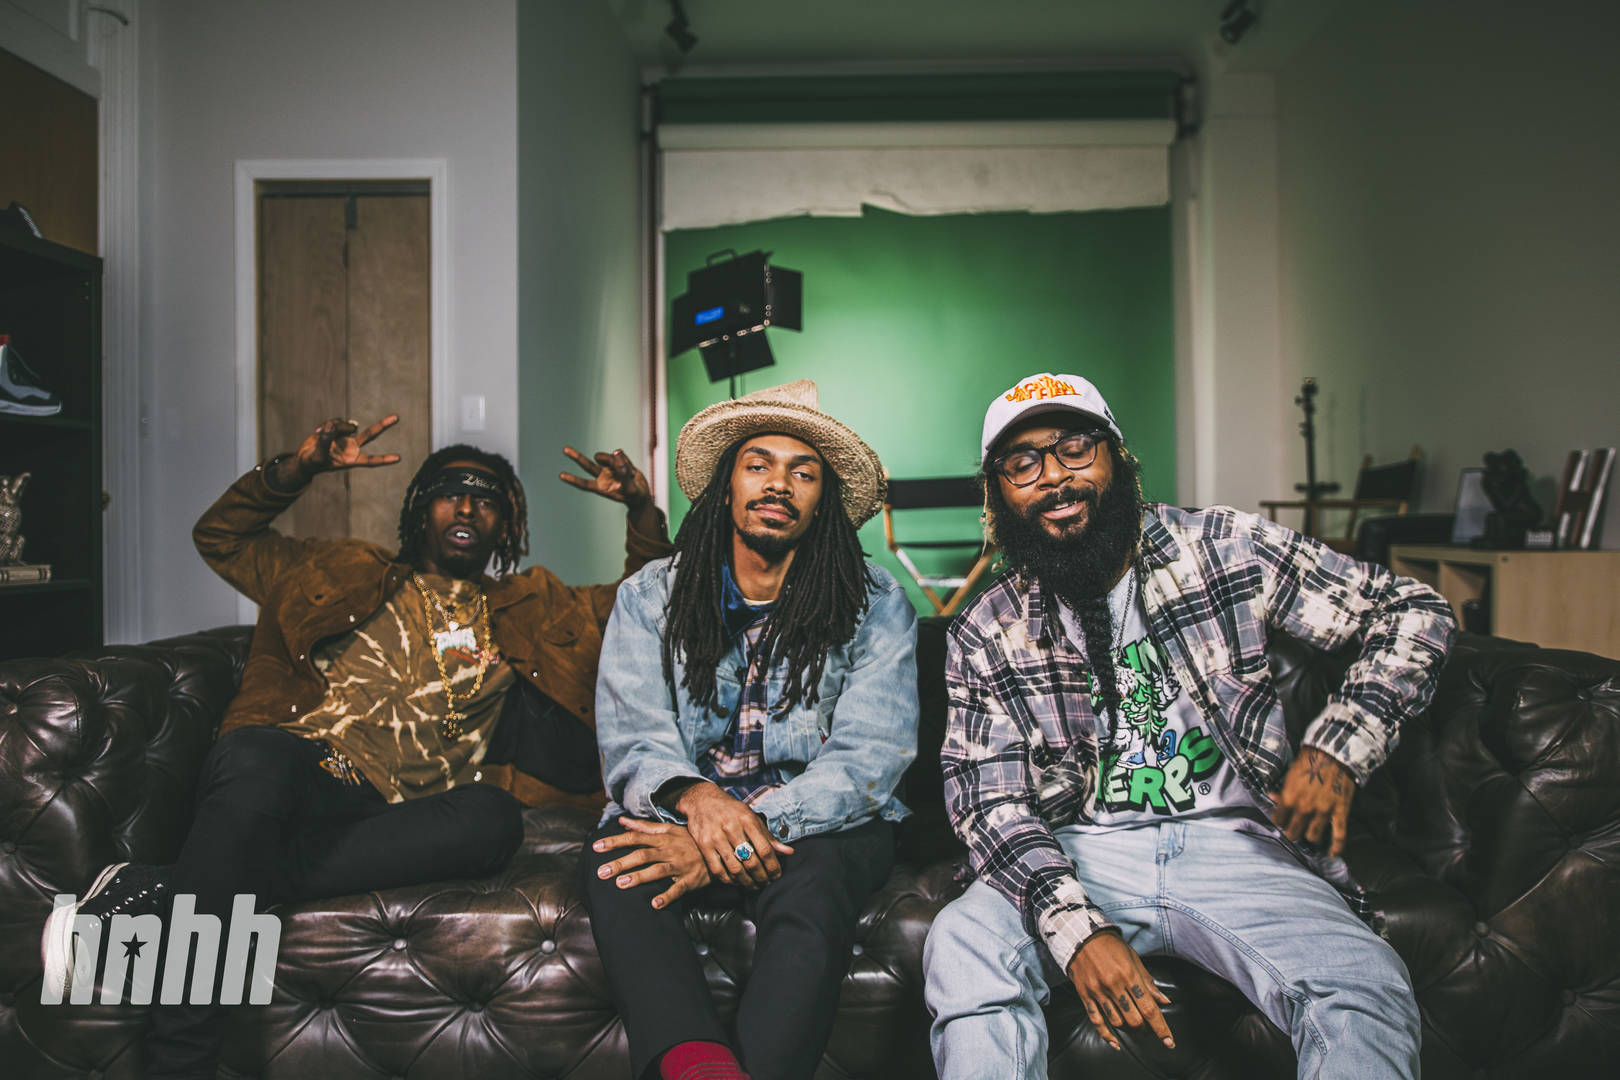 """Flatbush Zombies' Member Samples Mother's """"Gravesite"""" For Group's Upcoming Music"""